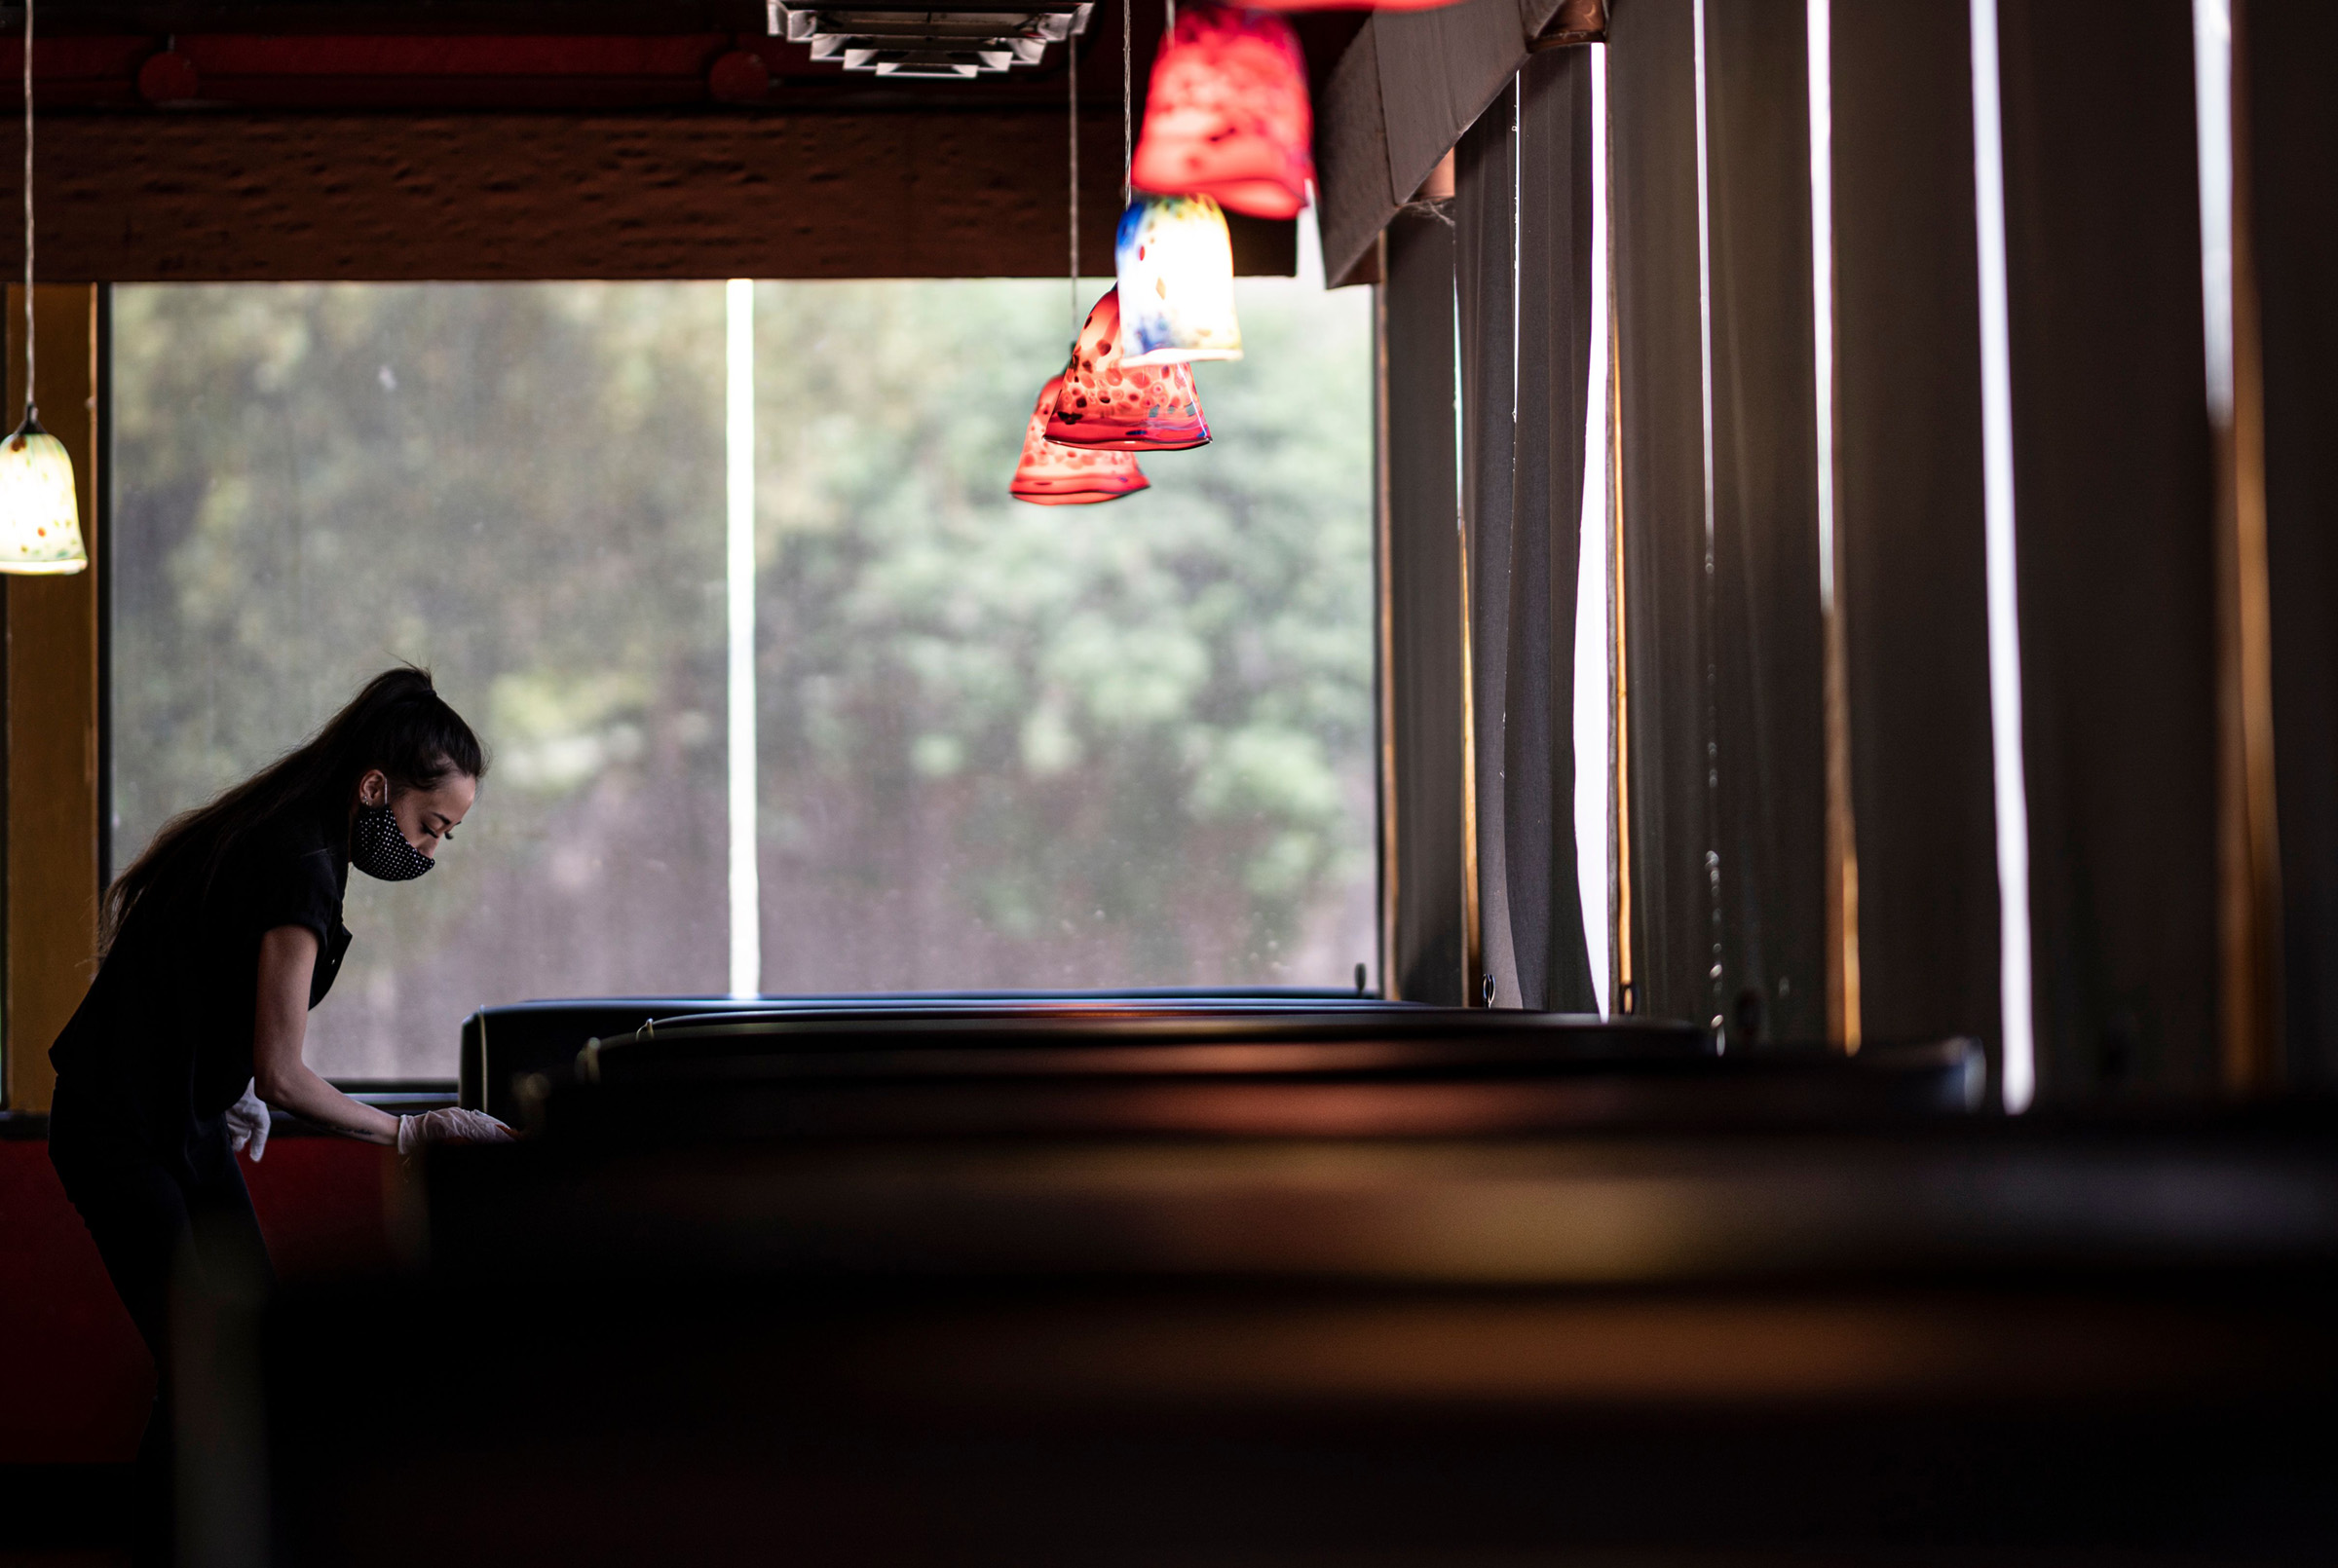 A waitress wearing a mask and gloves disinfects a table in a Restaurant on May 5, 2020 in Stillwater, Oklahoma.